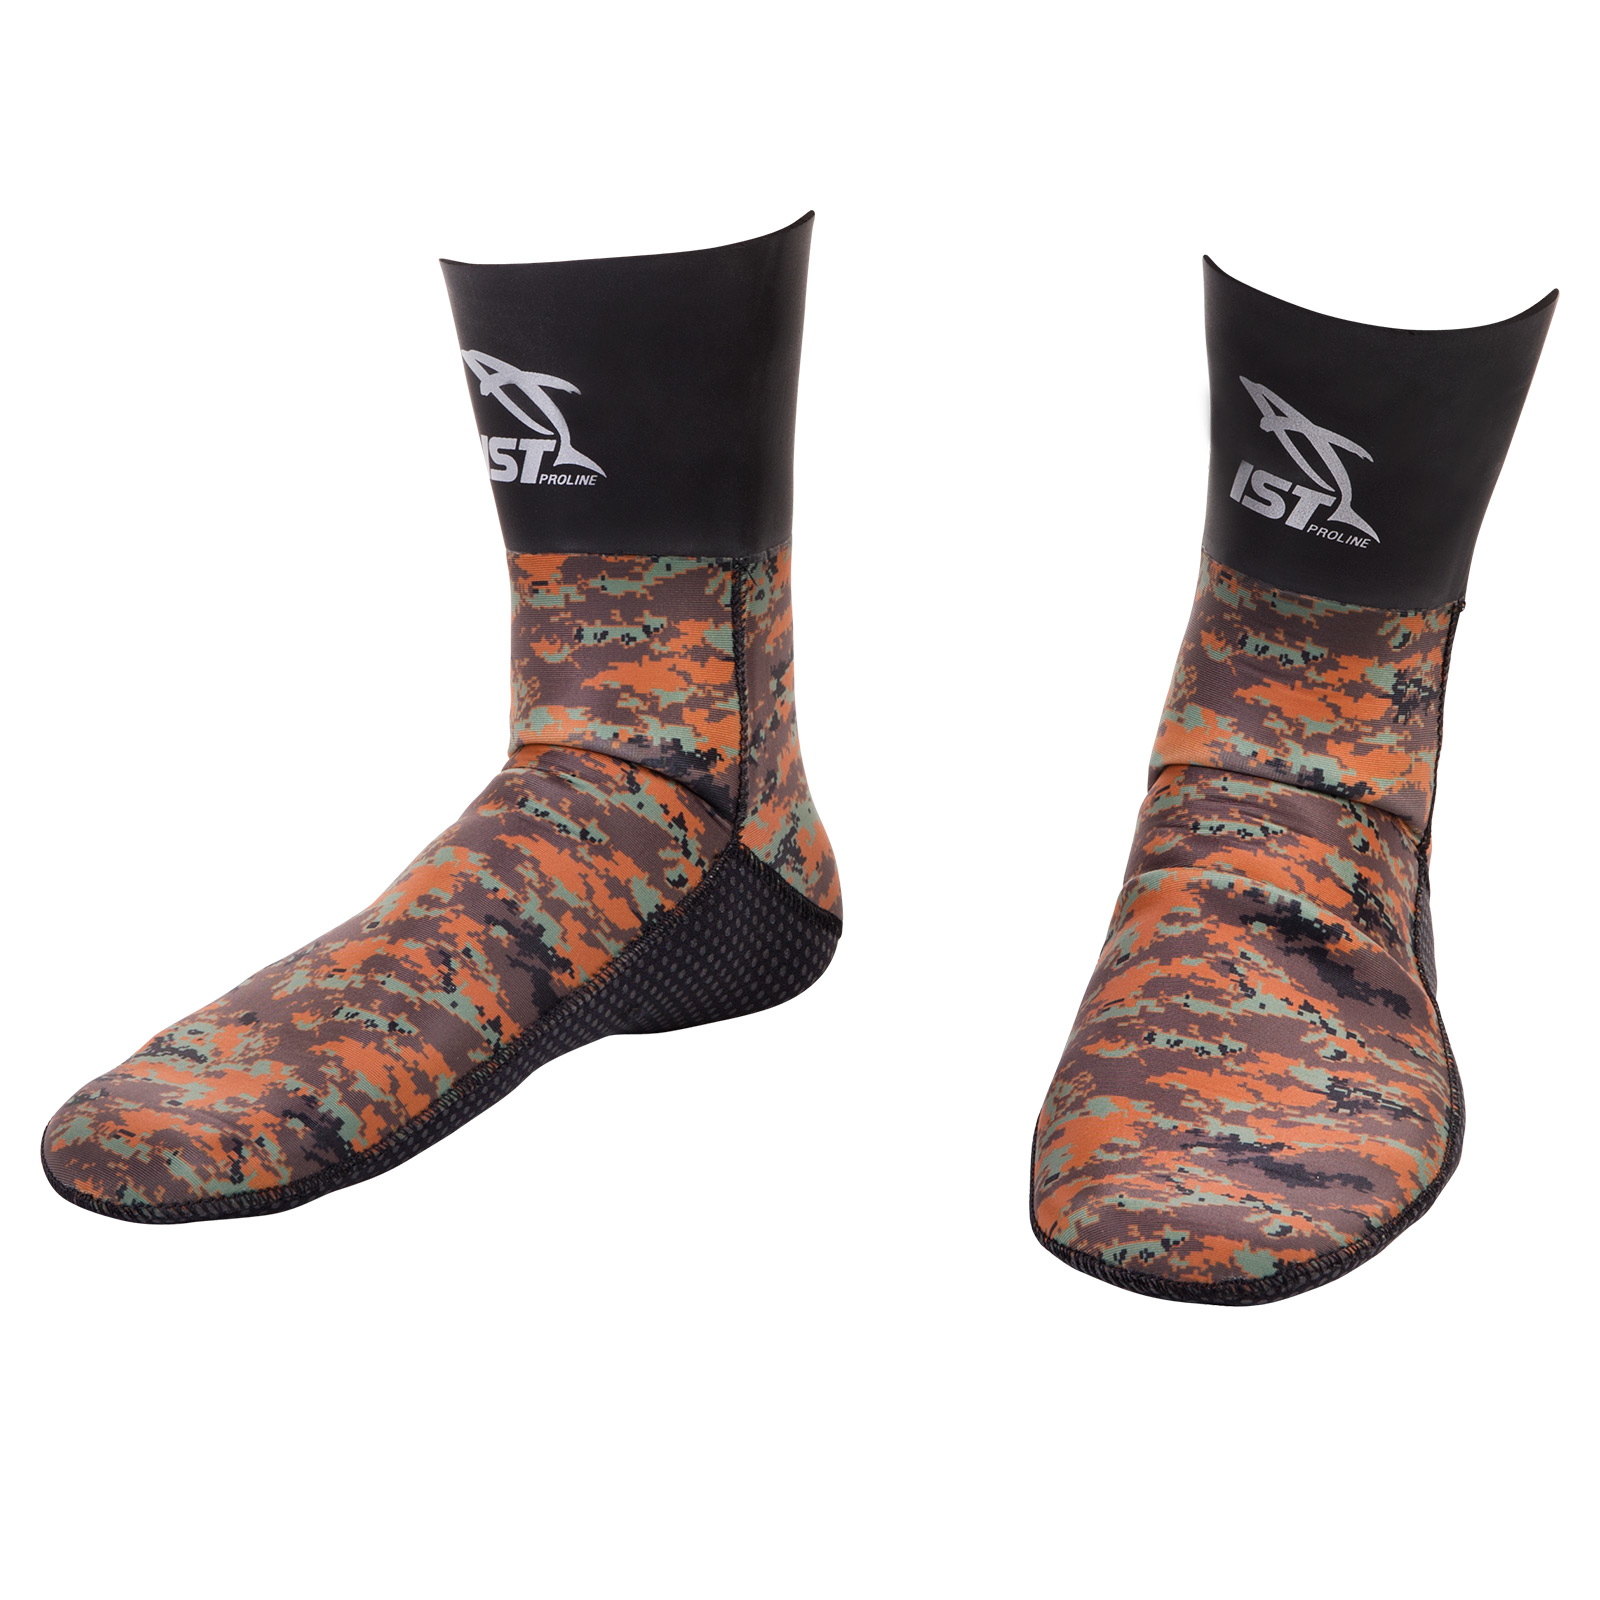 5mm Nylone Camouflage Socks